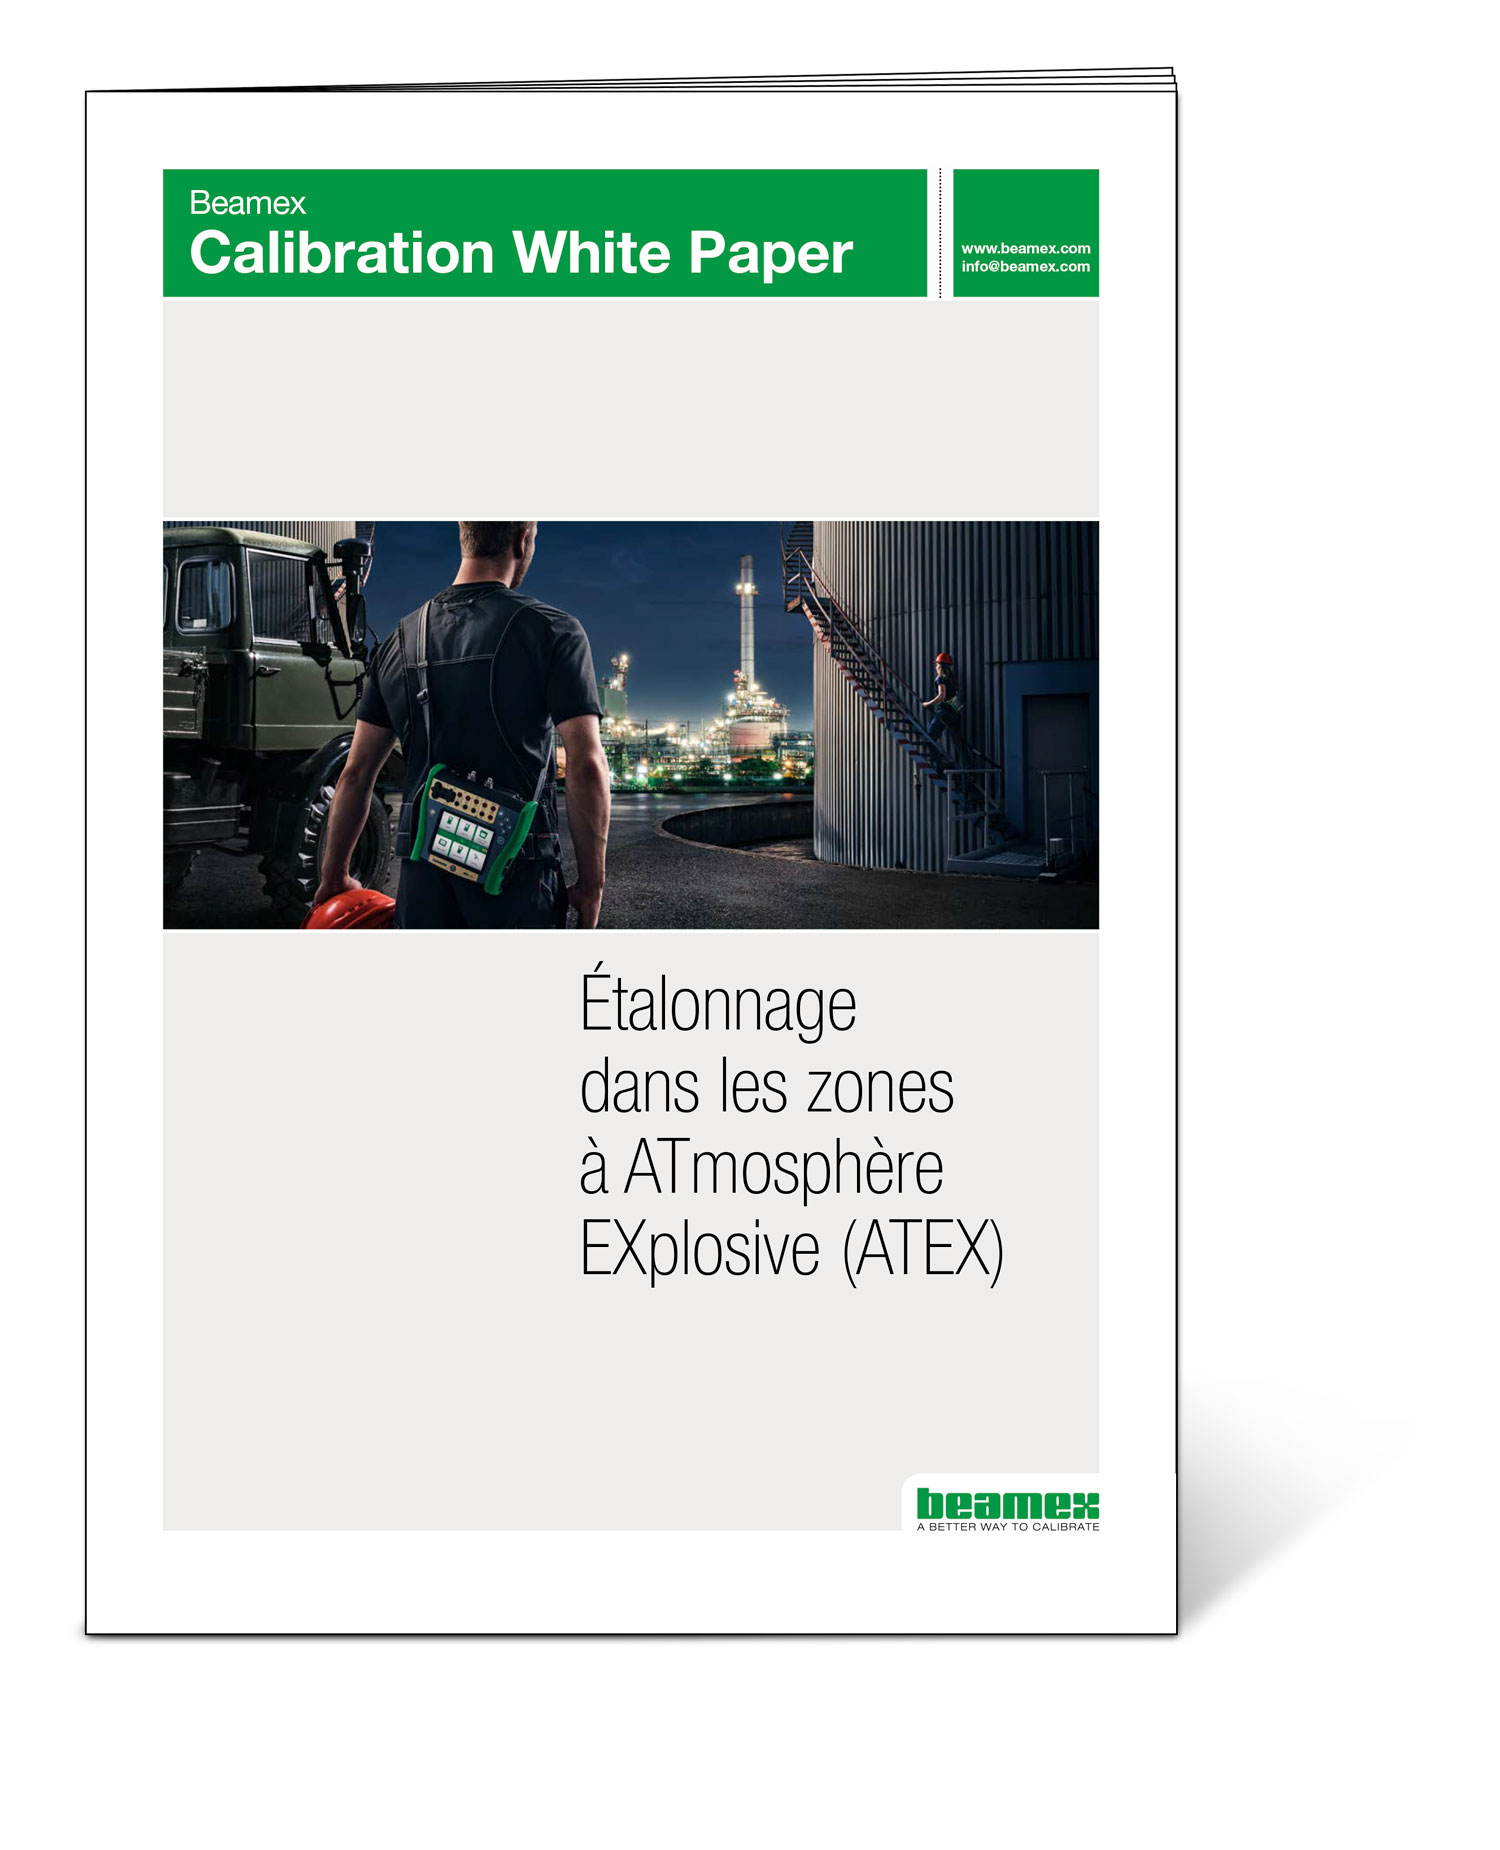 Beamex-WP-Calibration-in-hazardous-areas-1500px-v2_FRA.jpg